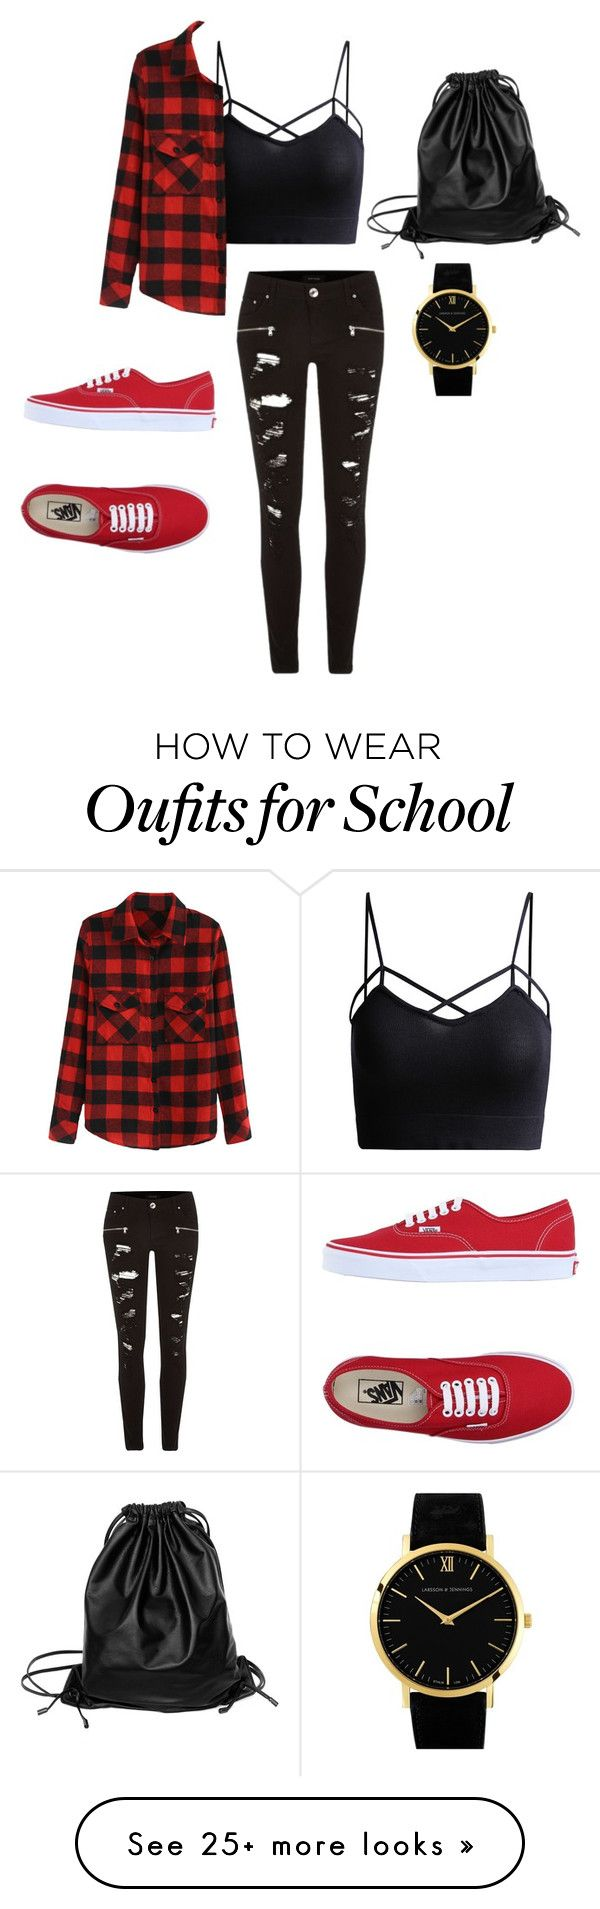 """""""School style """" by mishexxx on Polyvore featuring River Island, Vans, Xenab Lone and Larsson & Jennings"""